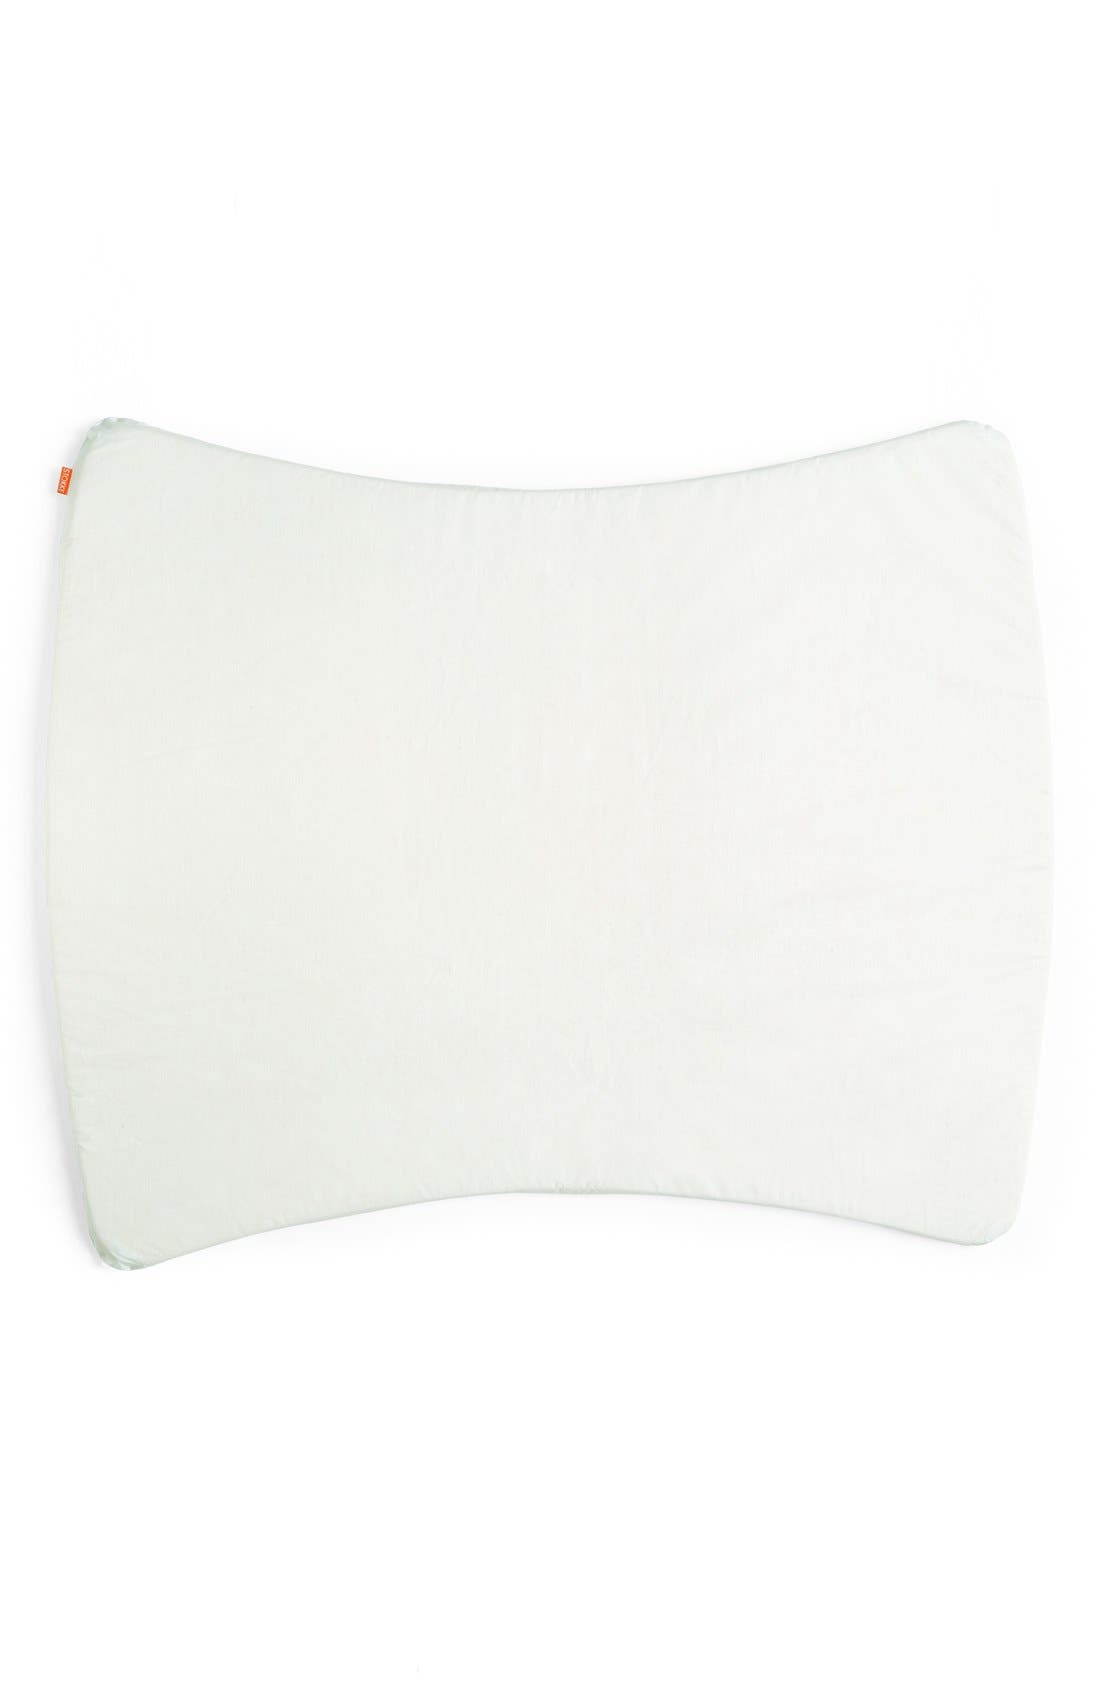 Stokke 'Care™' Terry Cover